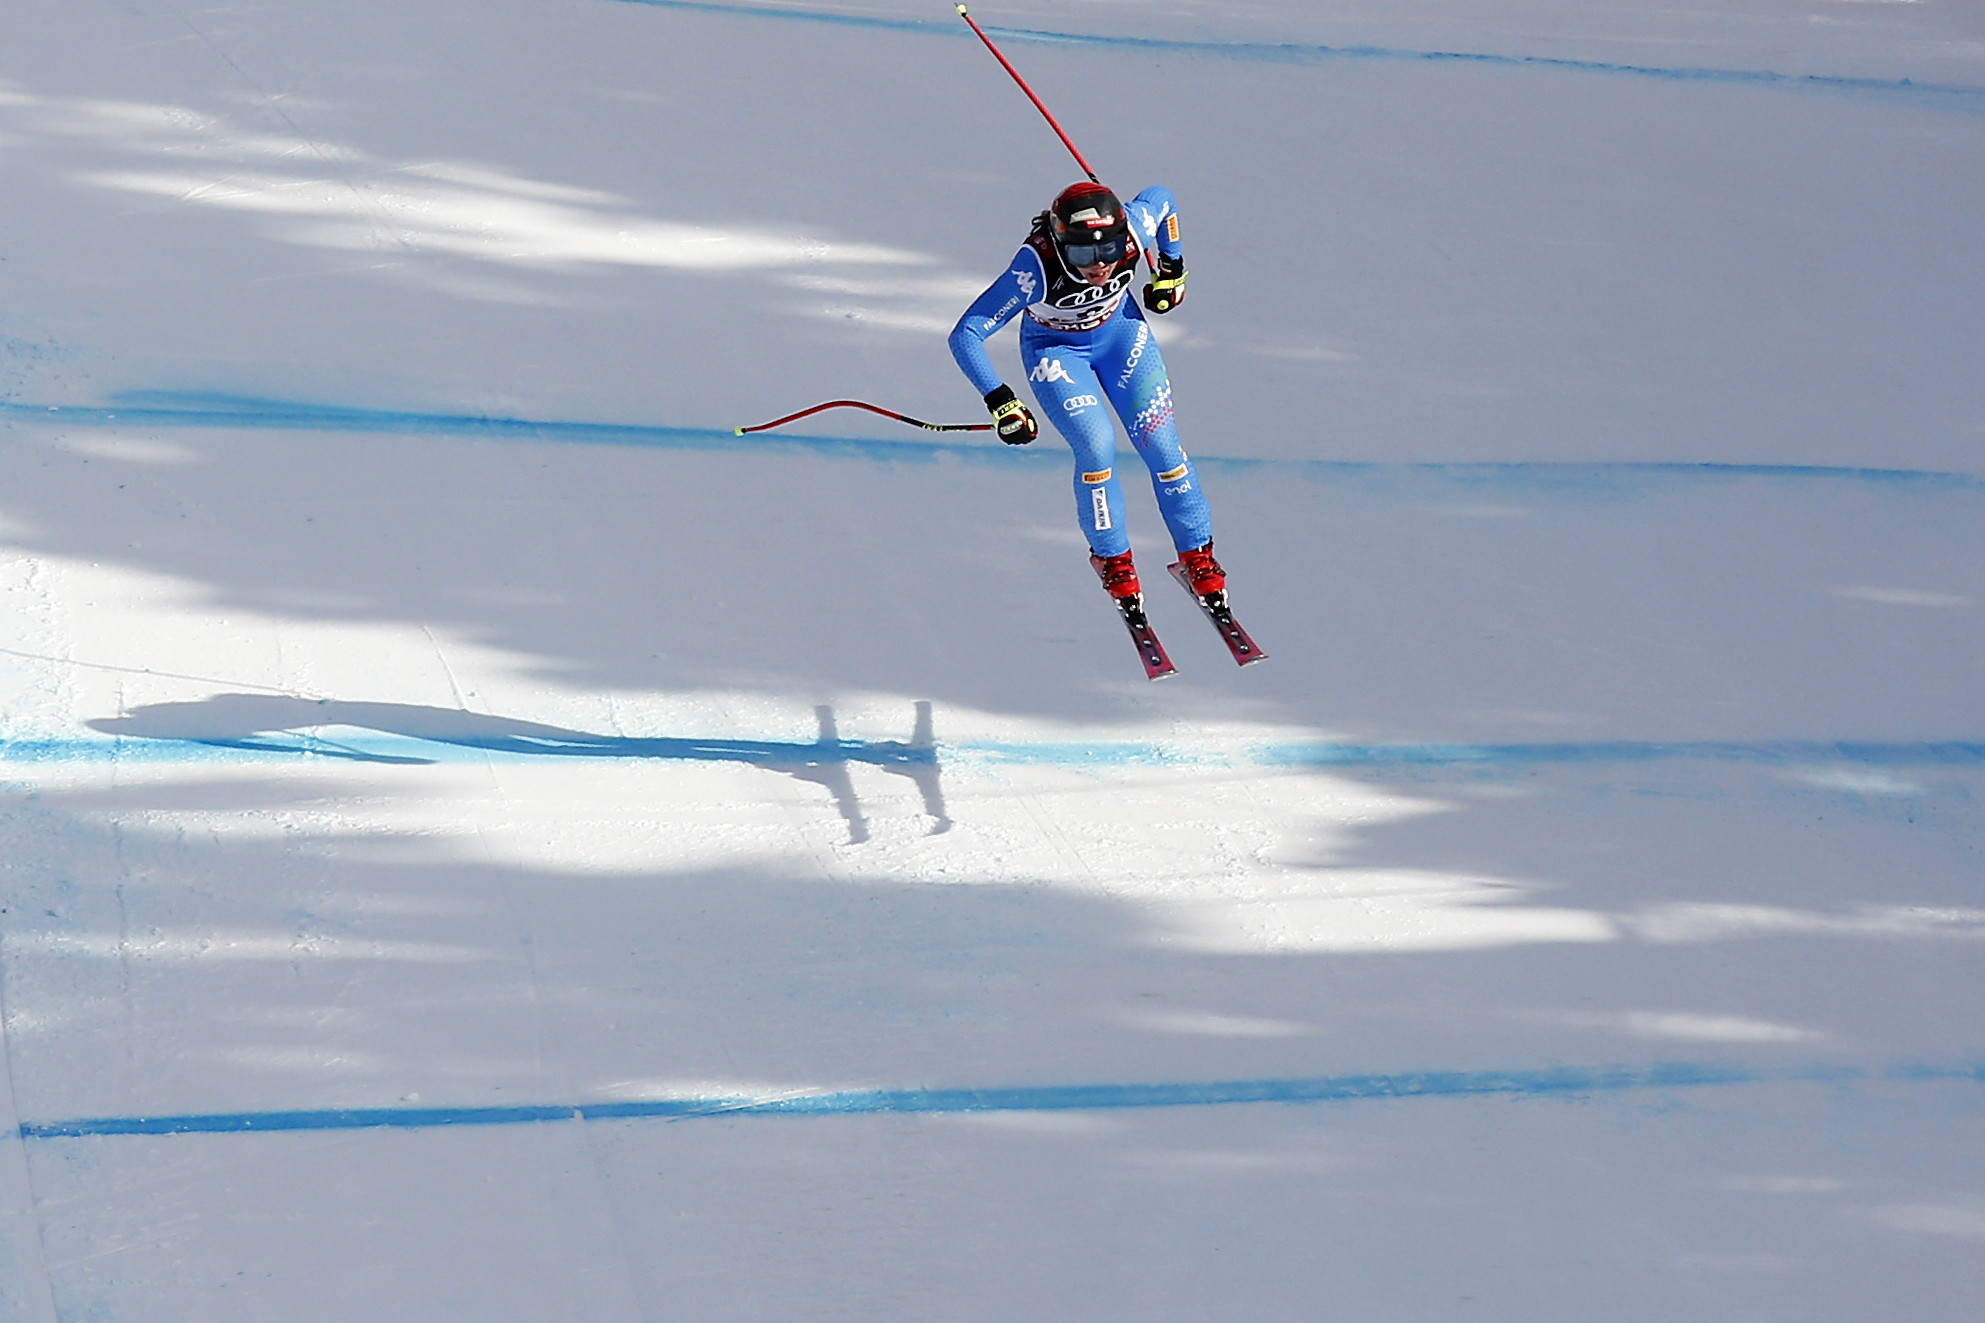 Downhill competition was the focus for the second successive day ©Getty Images